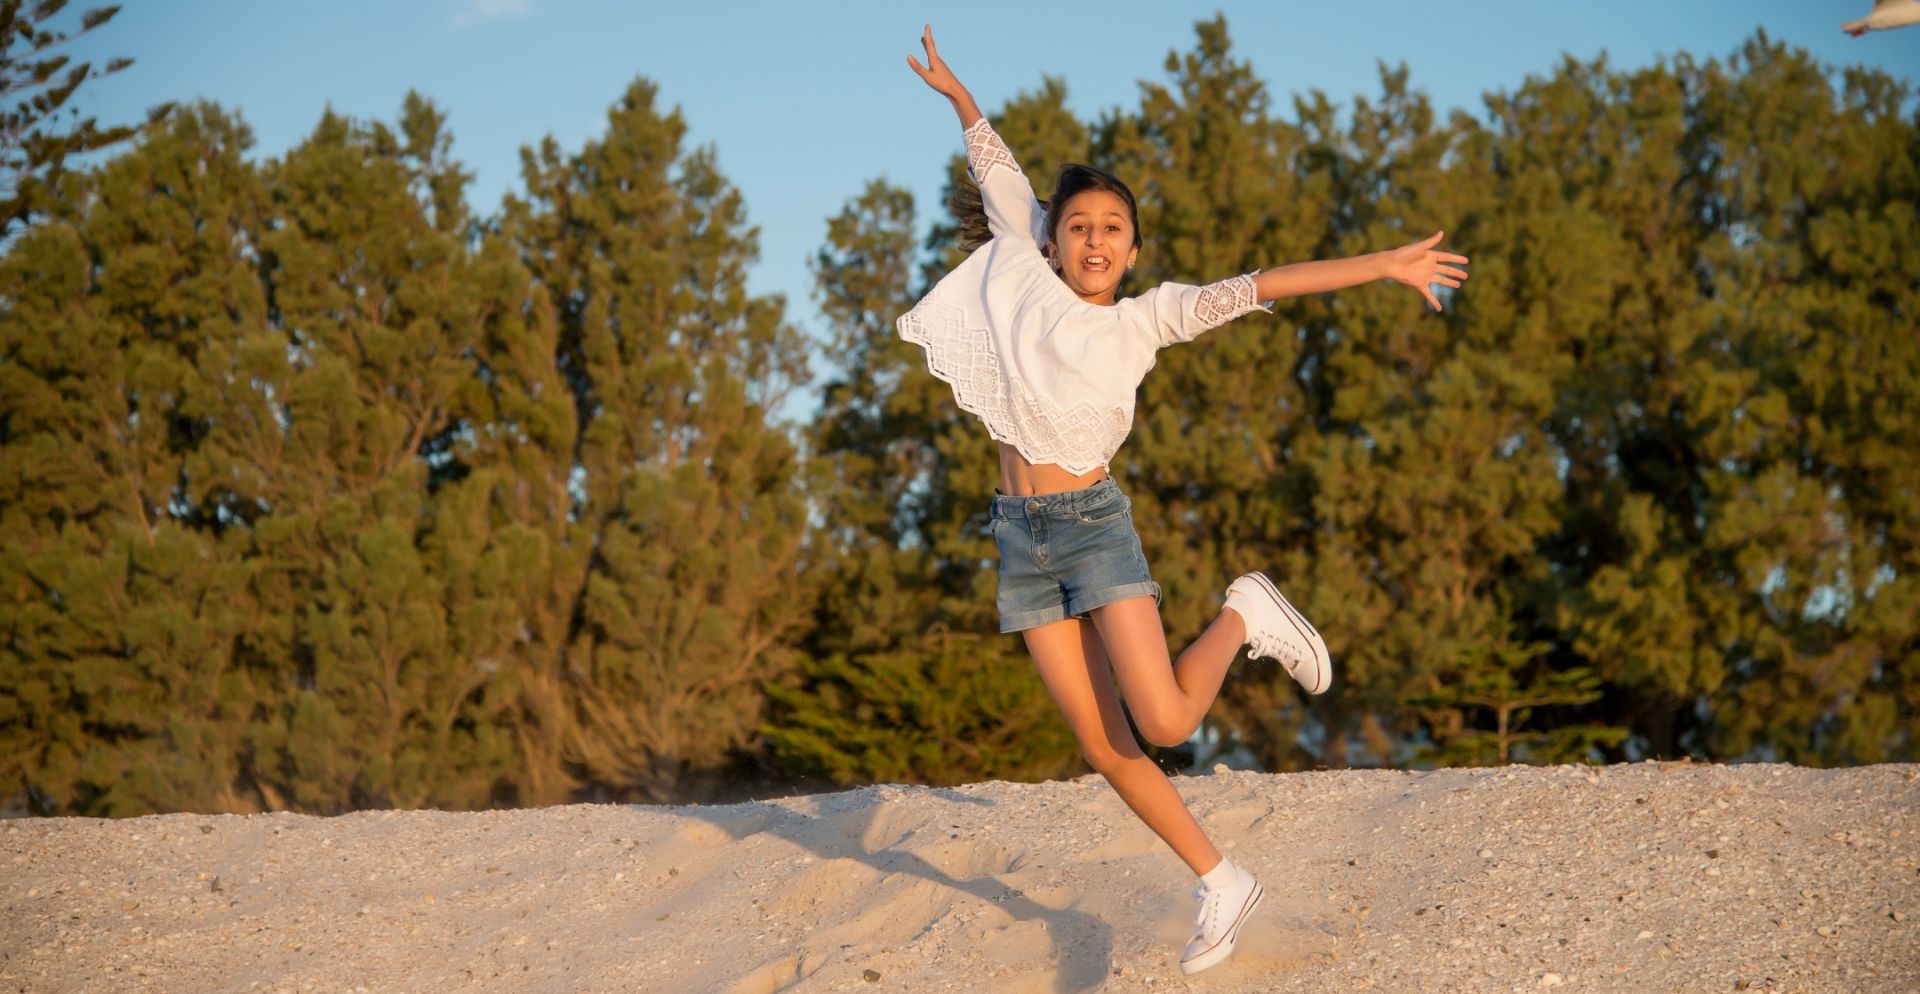 A photo of a girl jumping